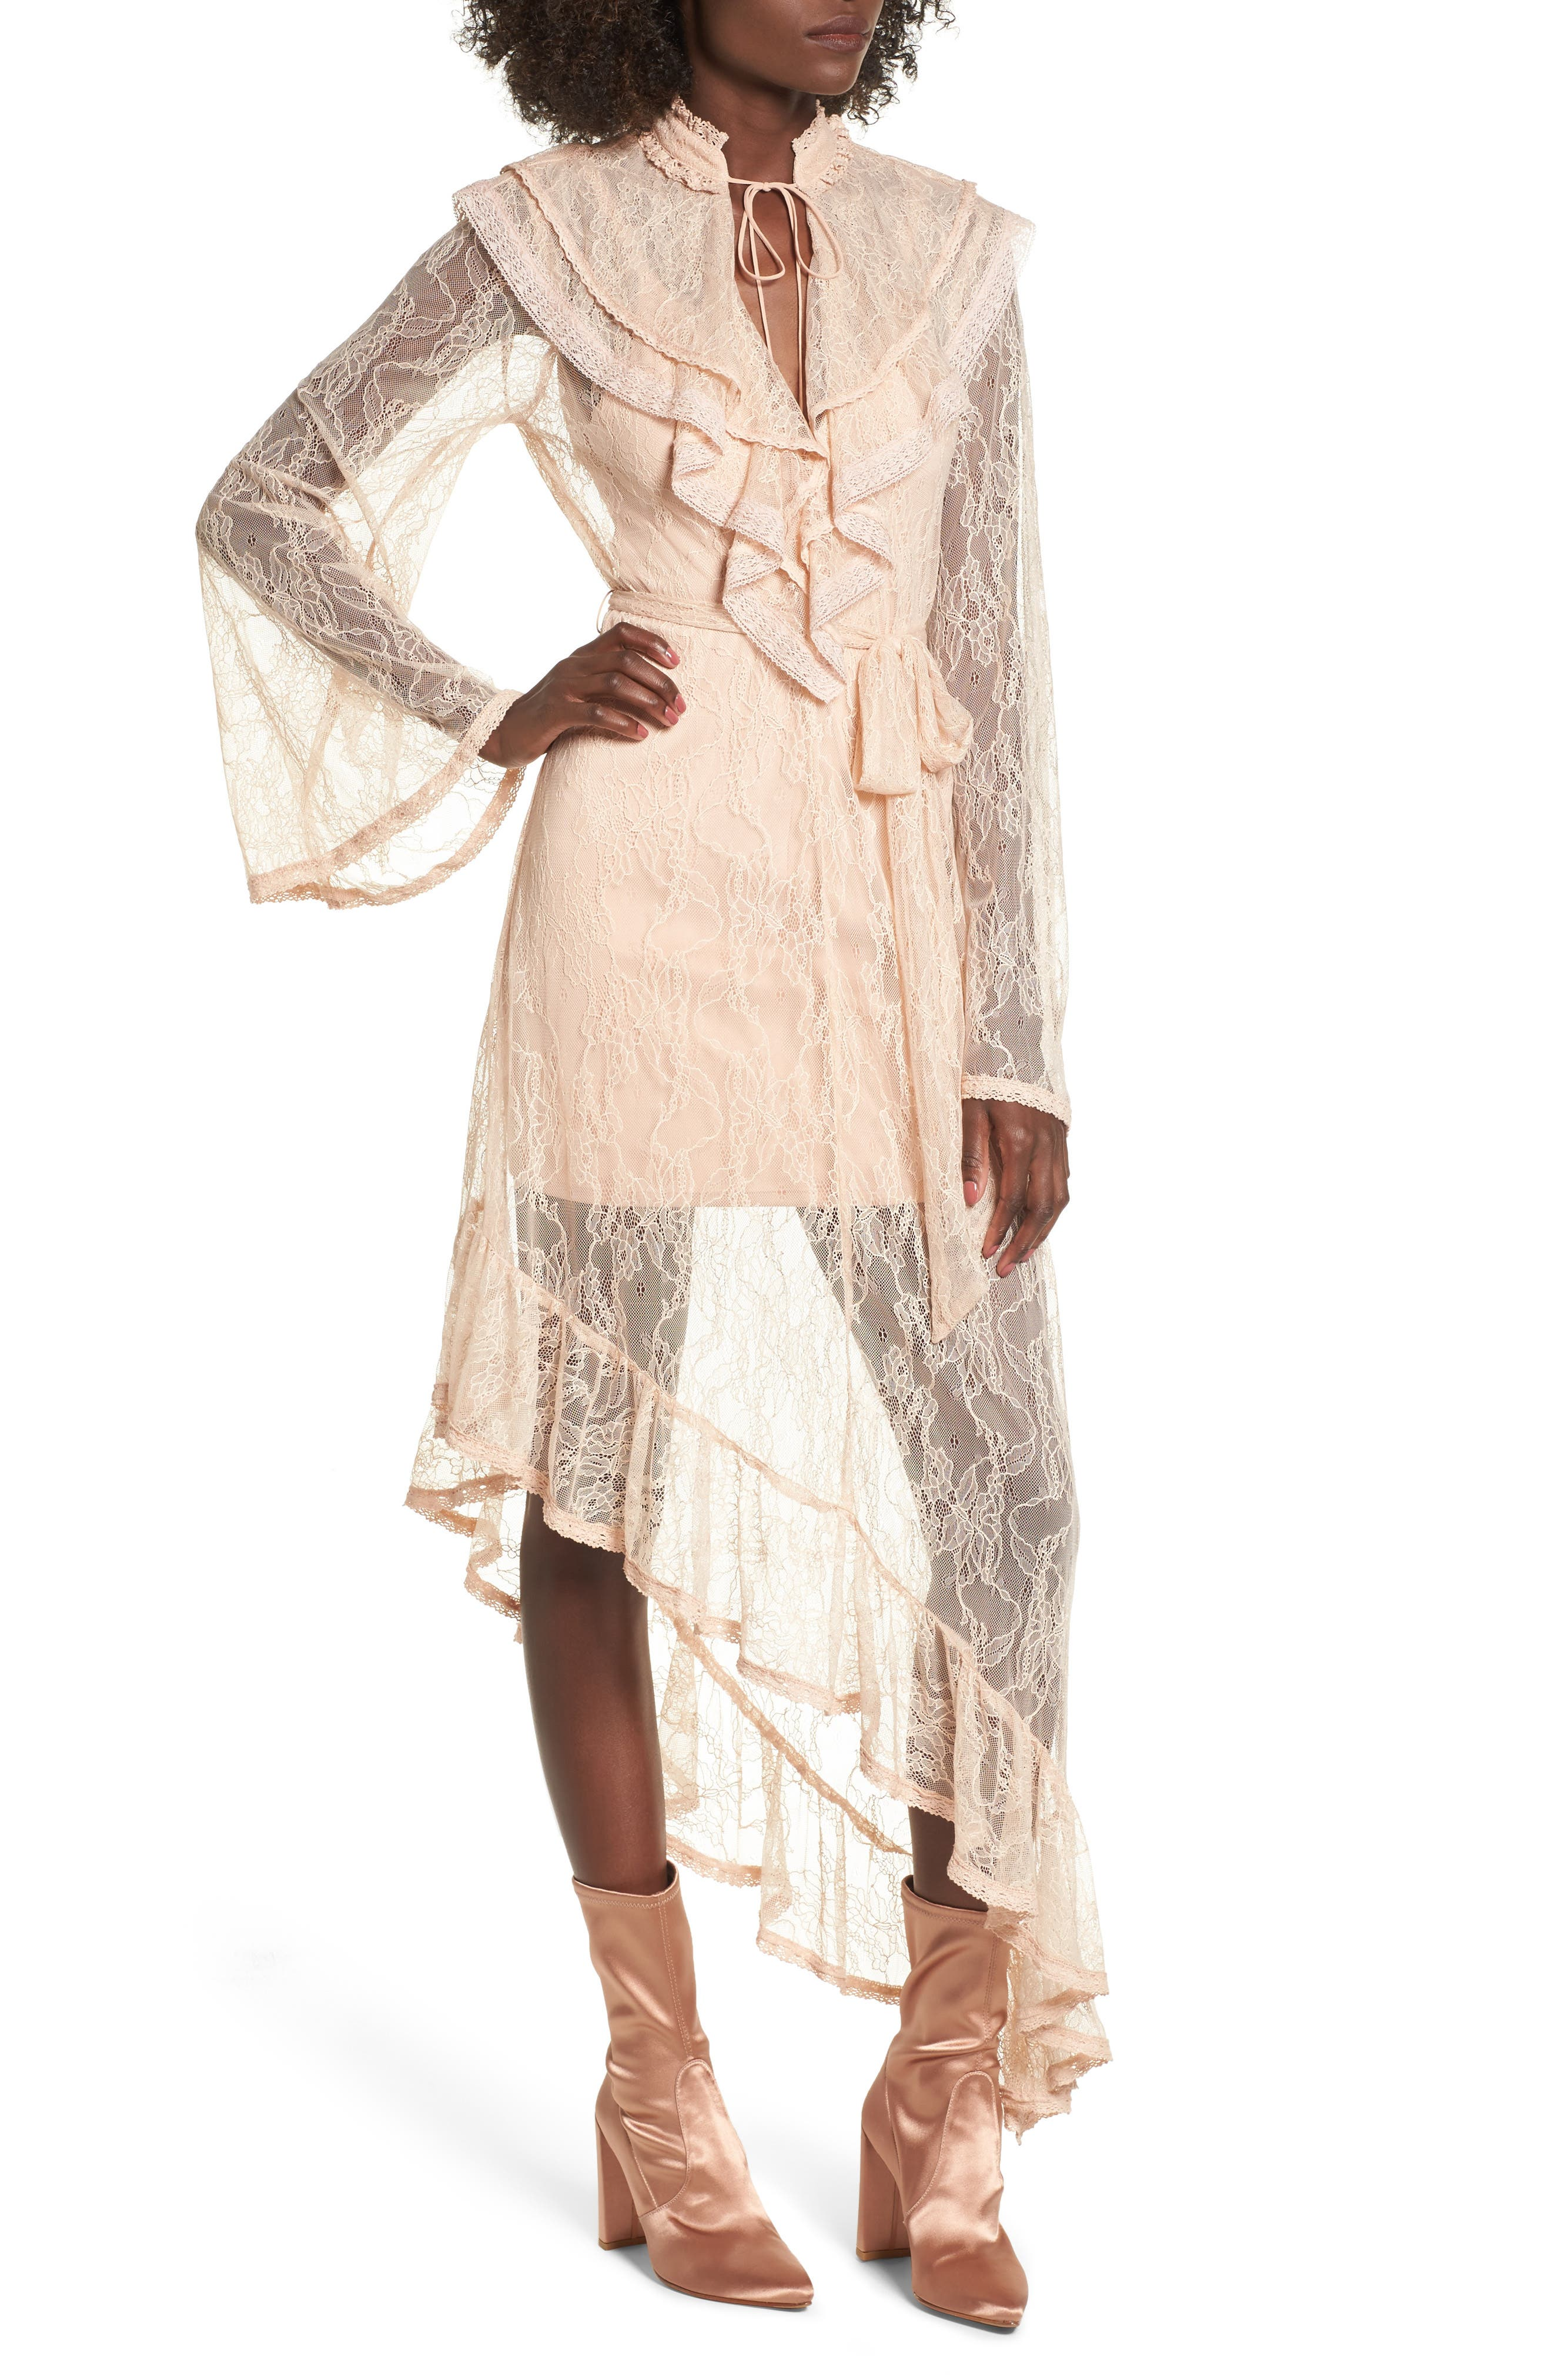 Alternate Image 1 Selected - AFRM Ray Asymmetrical Lace Dress